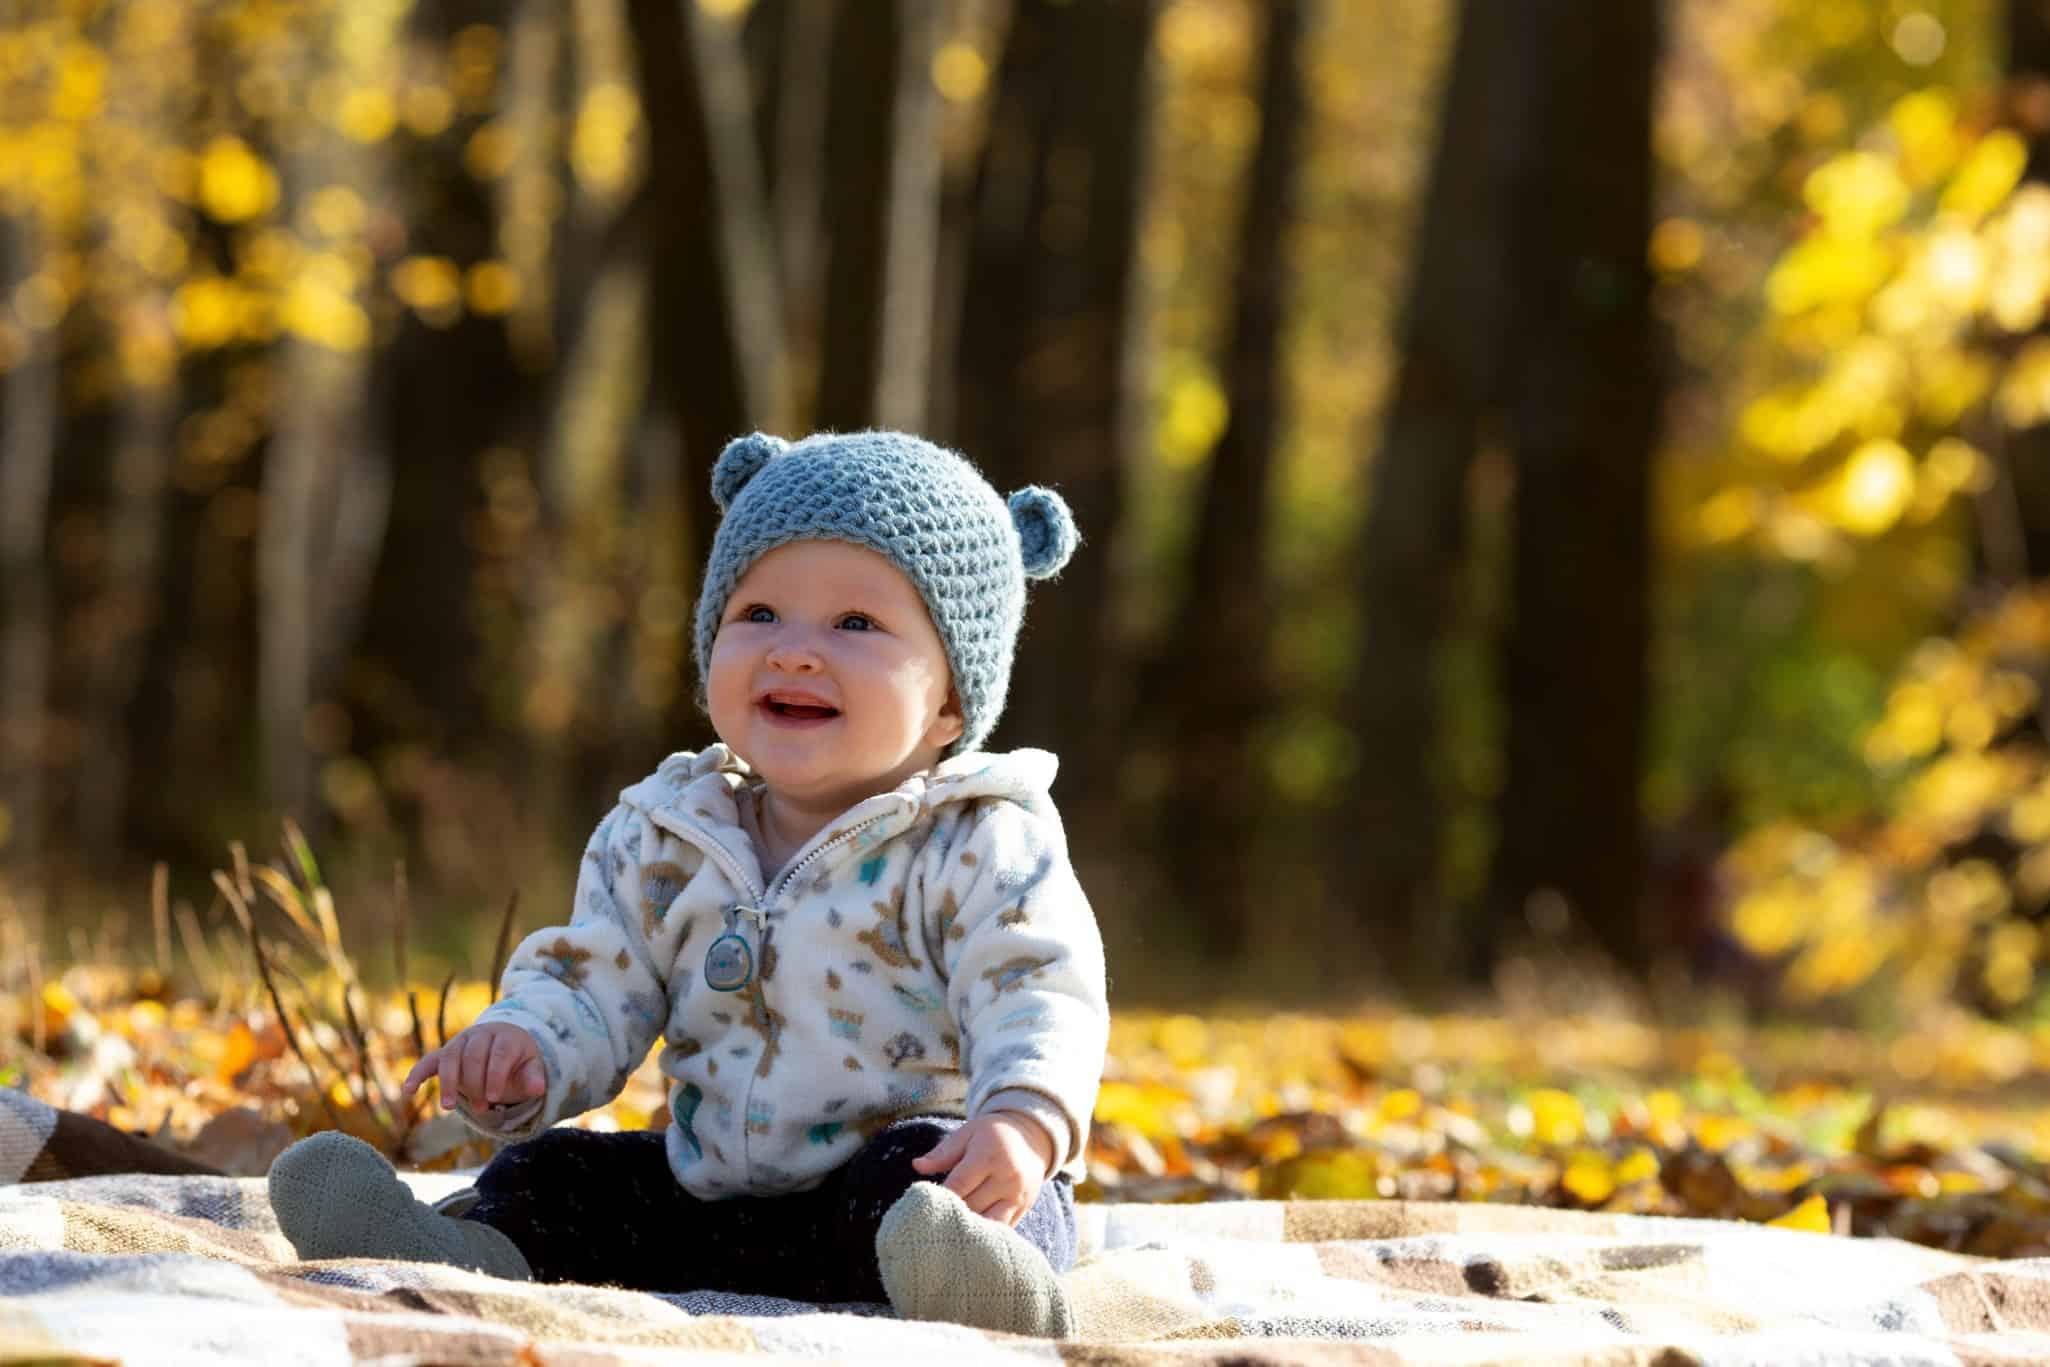 baby-is-learning-to-sit-little-girl-is-wearing-funny-hat-with-ears_t20_lxB1Gm 2